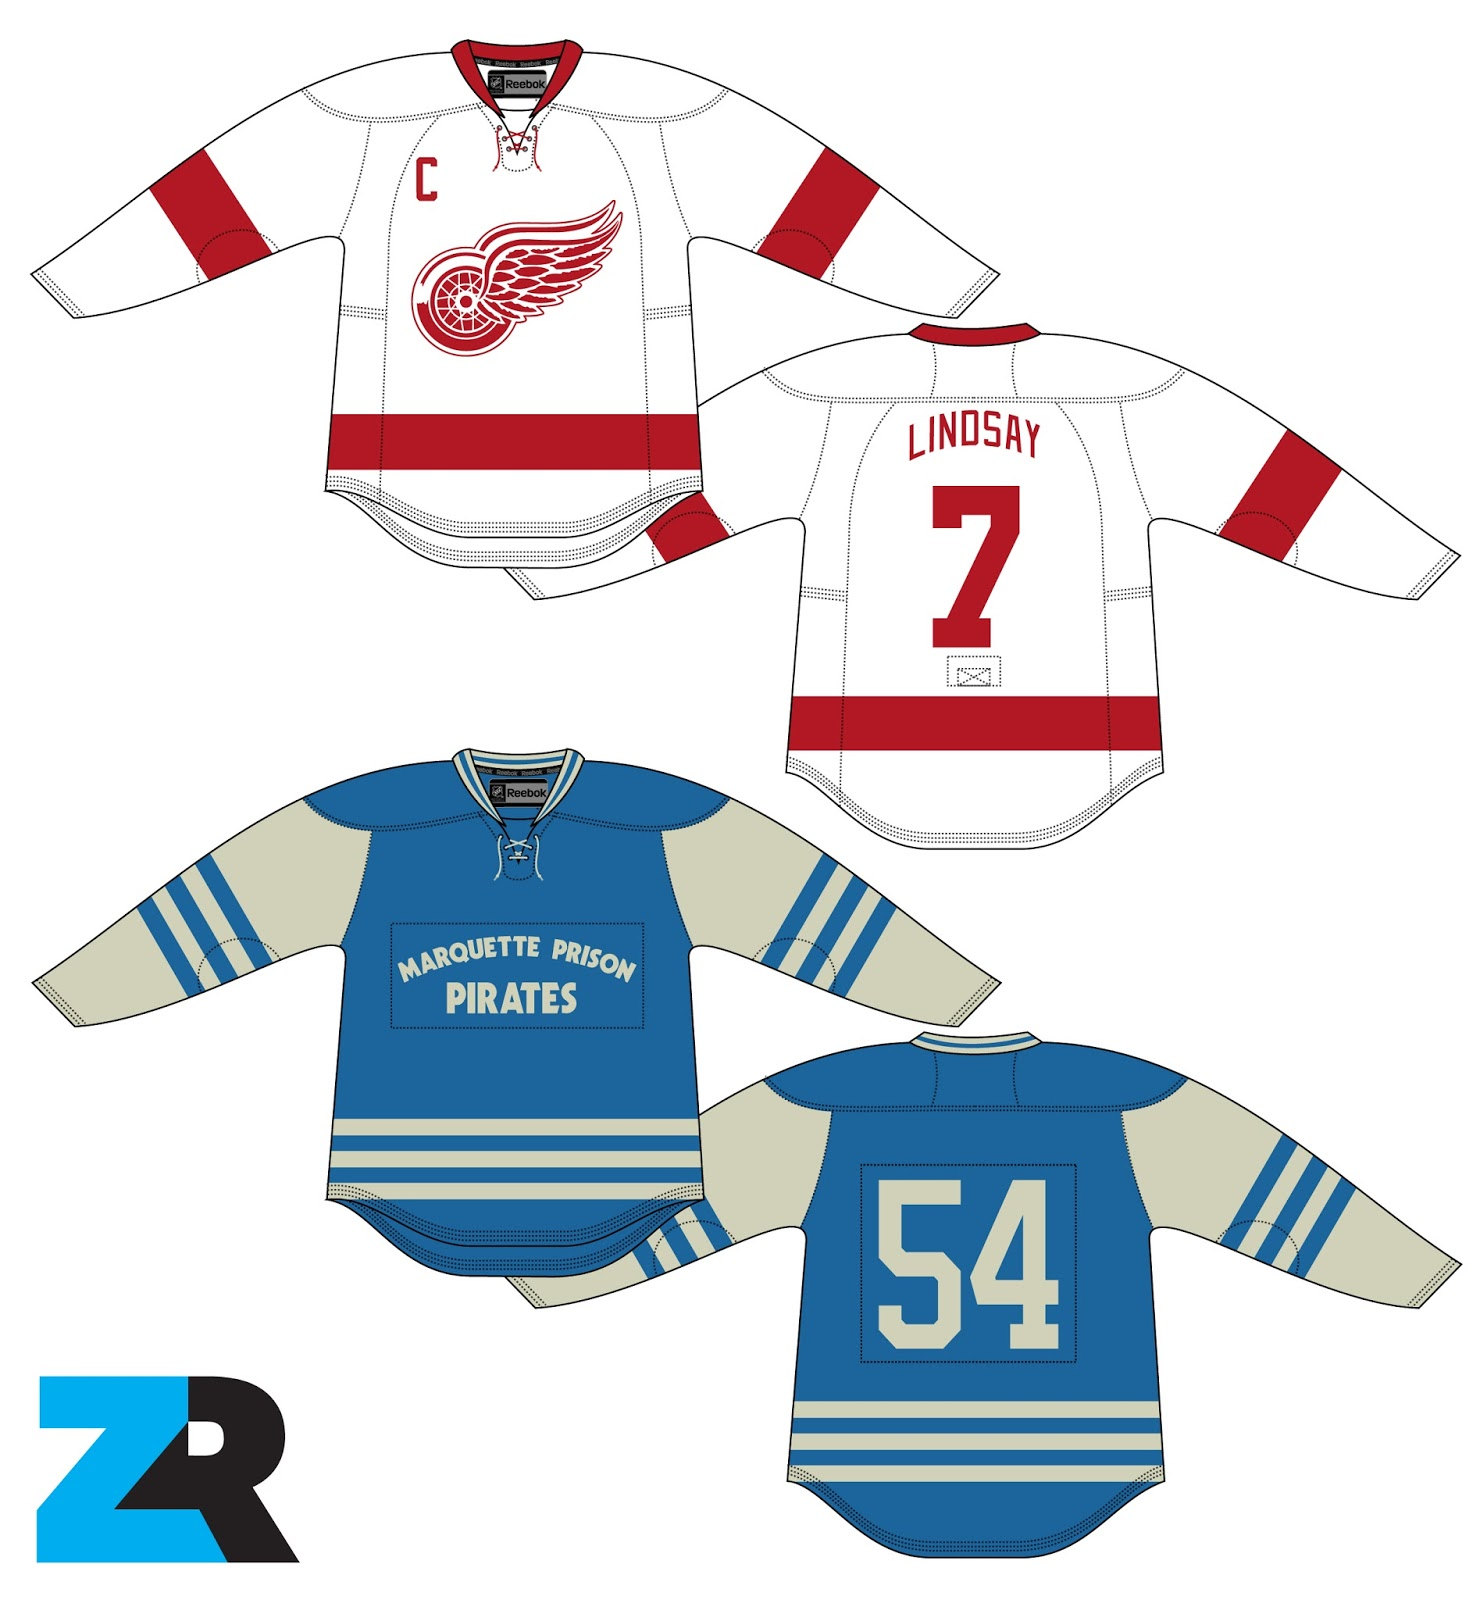 79cf8f182c9 I had to do my research in order to properly review this concept. On  February 2, 1954, the Detroit Red Wings played a game against inmates from  Marquette ...